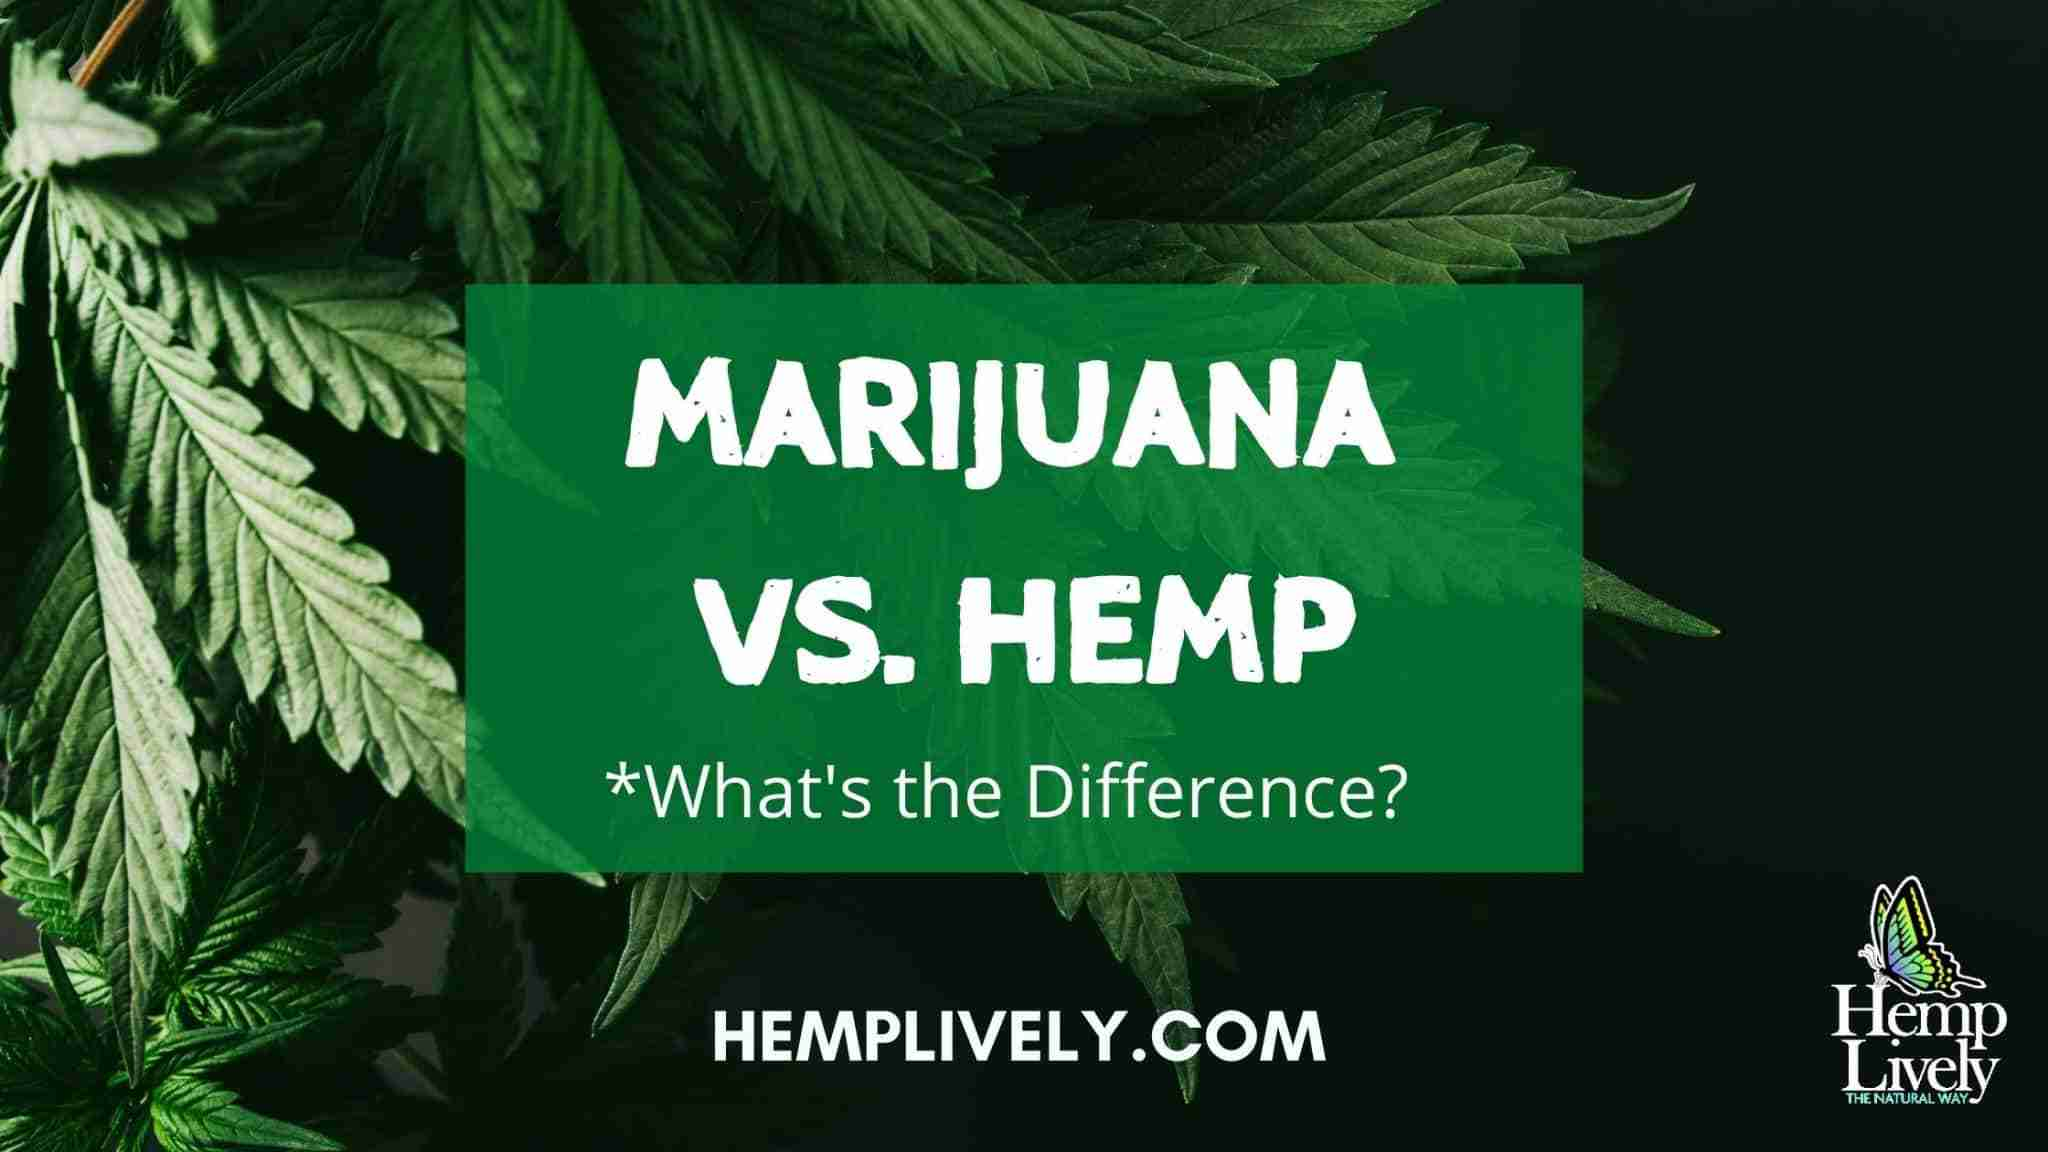 What's the Difference Between Marijuana and Hemp?